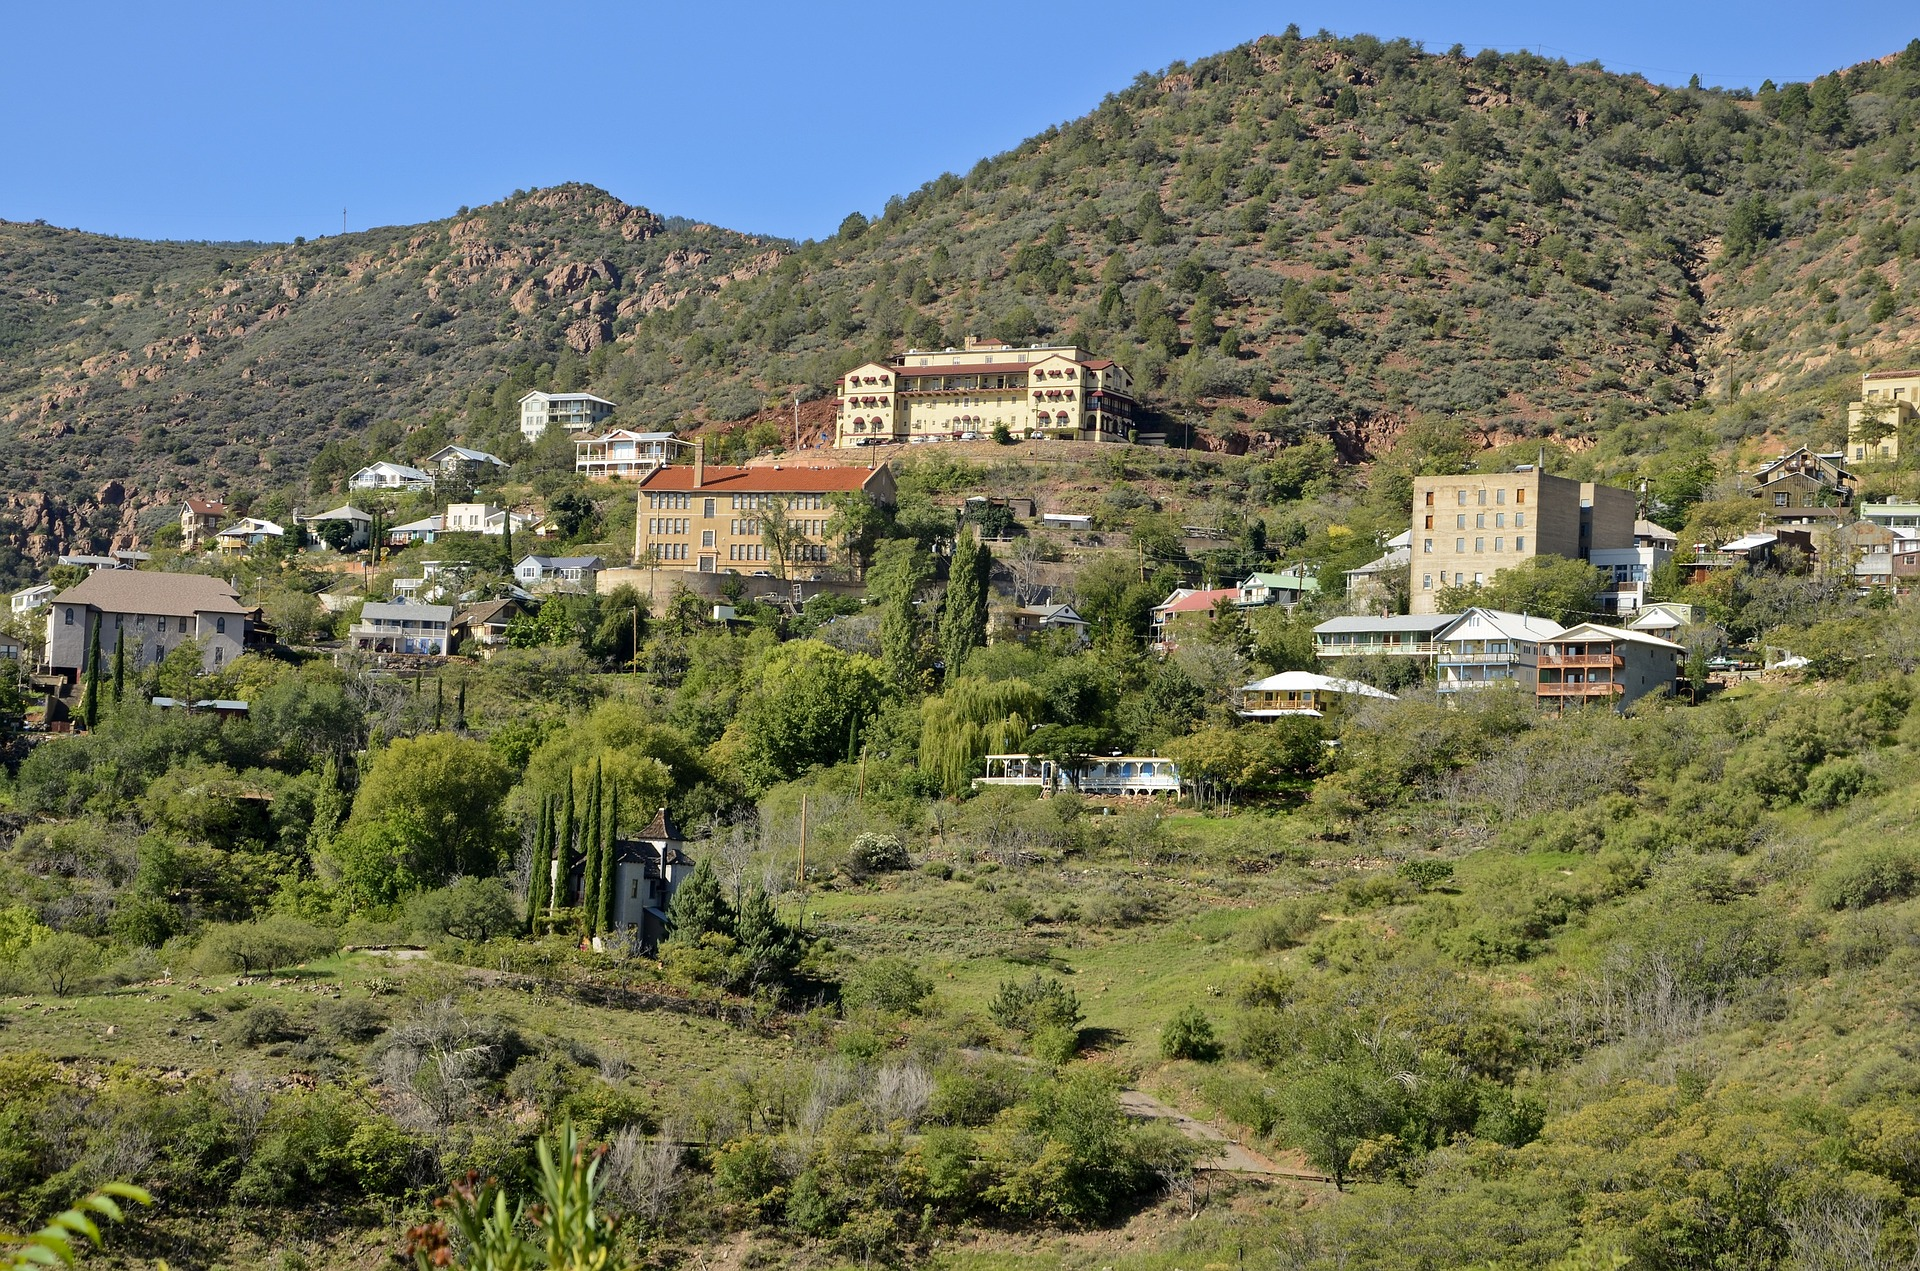 Jerome, Arizona \\ These 7 Arizona Weekend Road Trips are a great way to get away a day or two and see everything that Arizona has to offer!